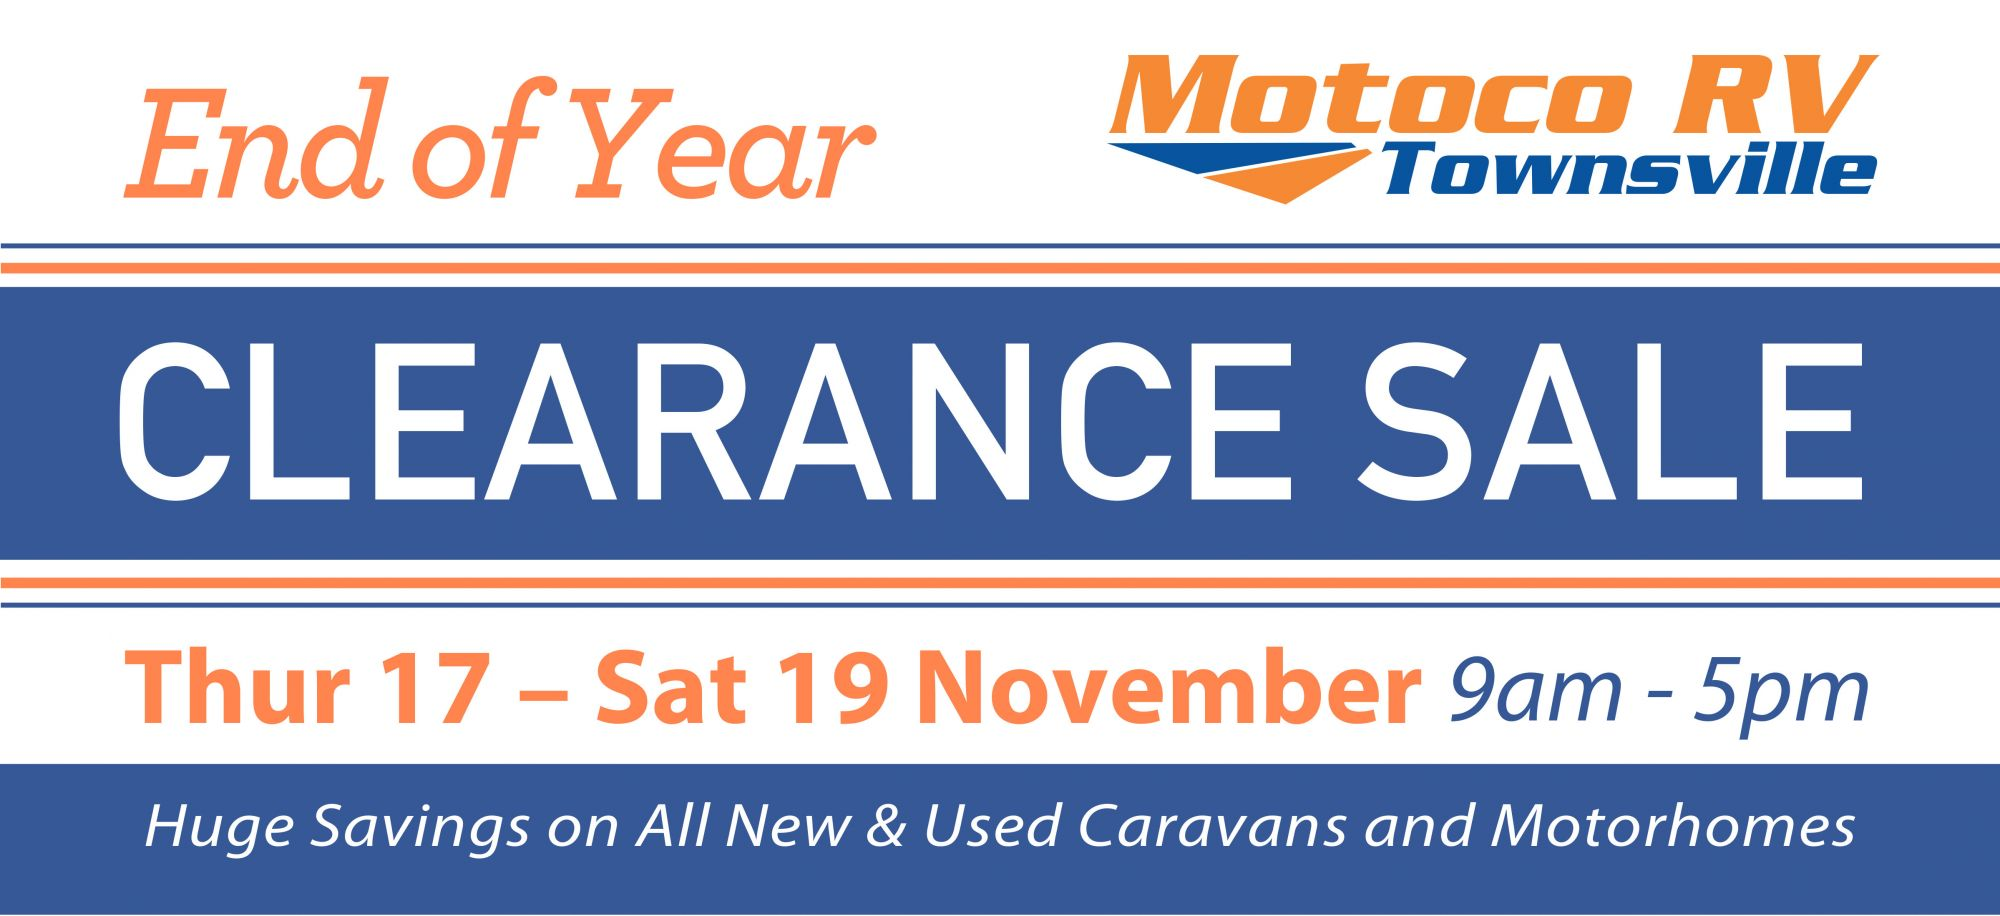 End of Year Clearance Sale